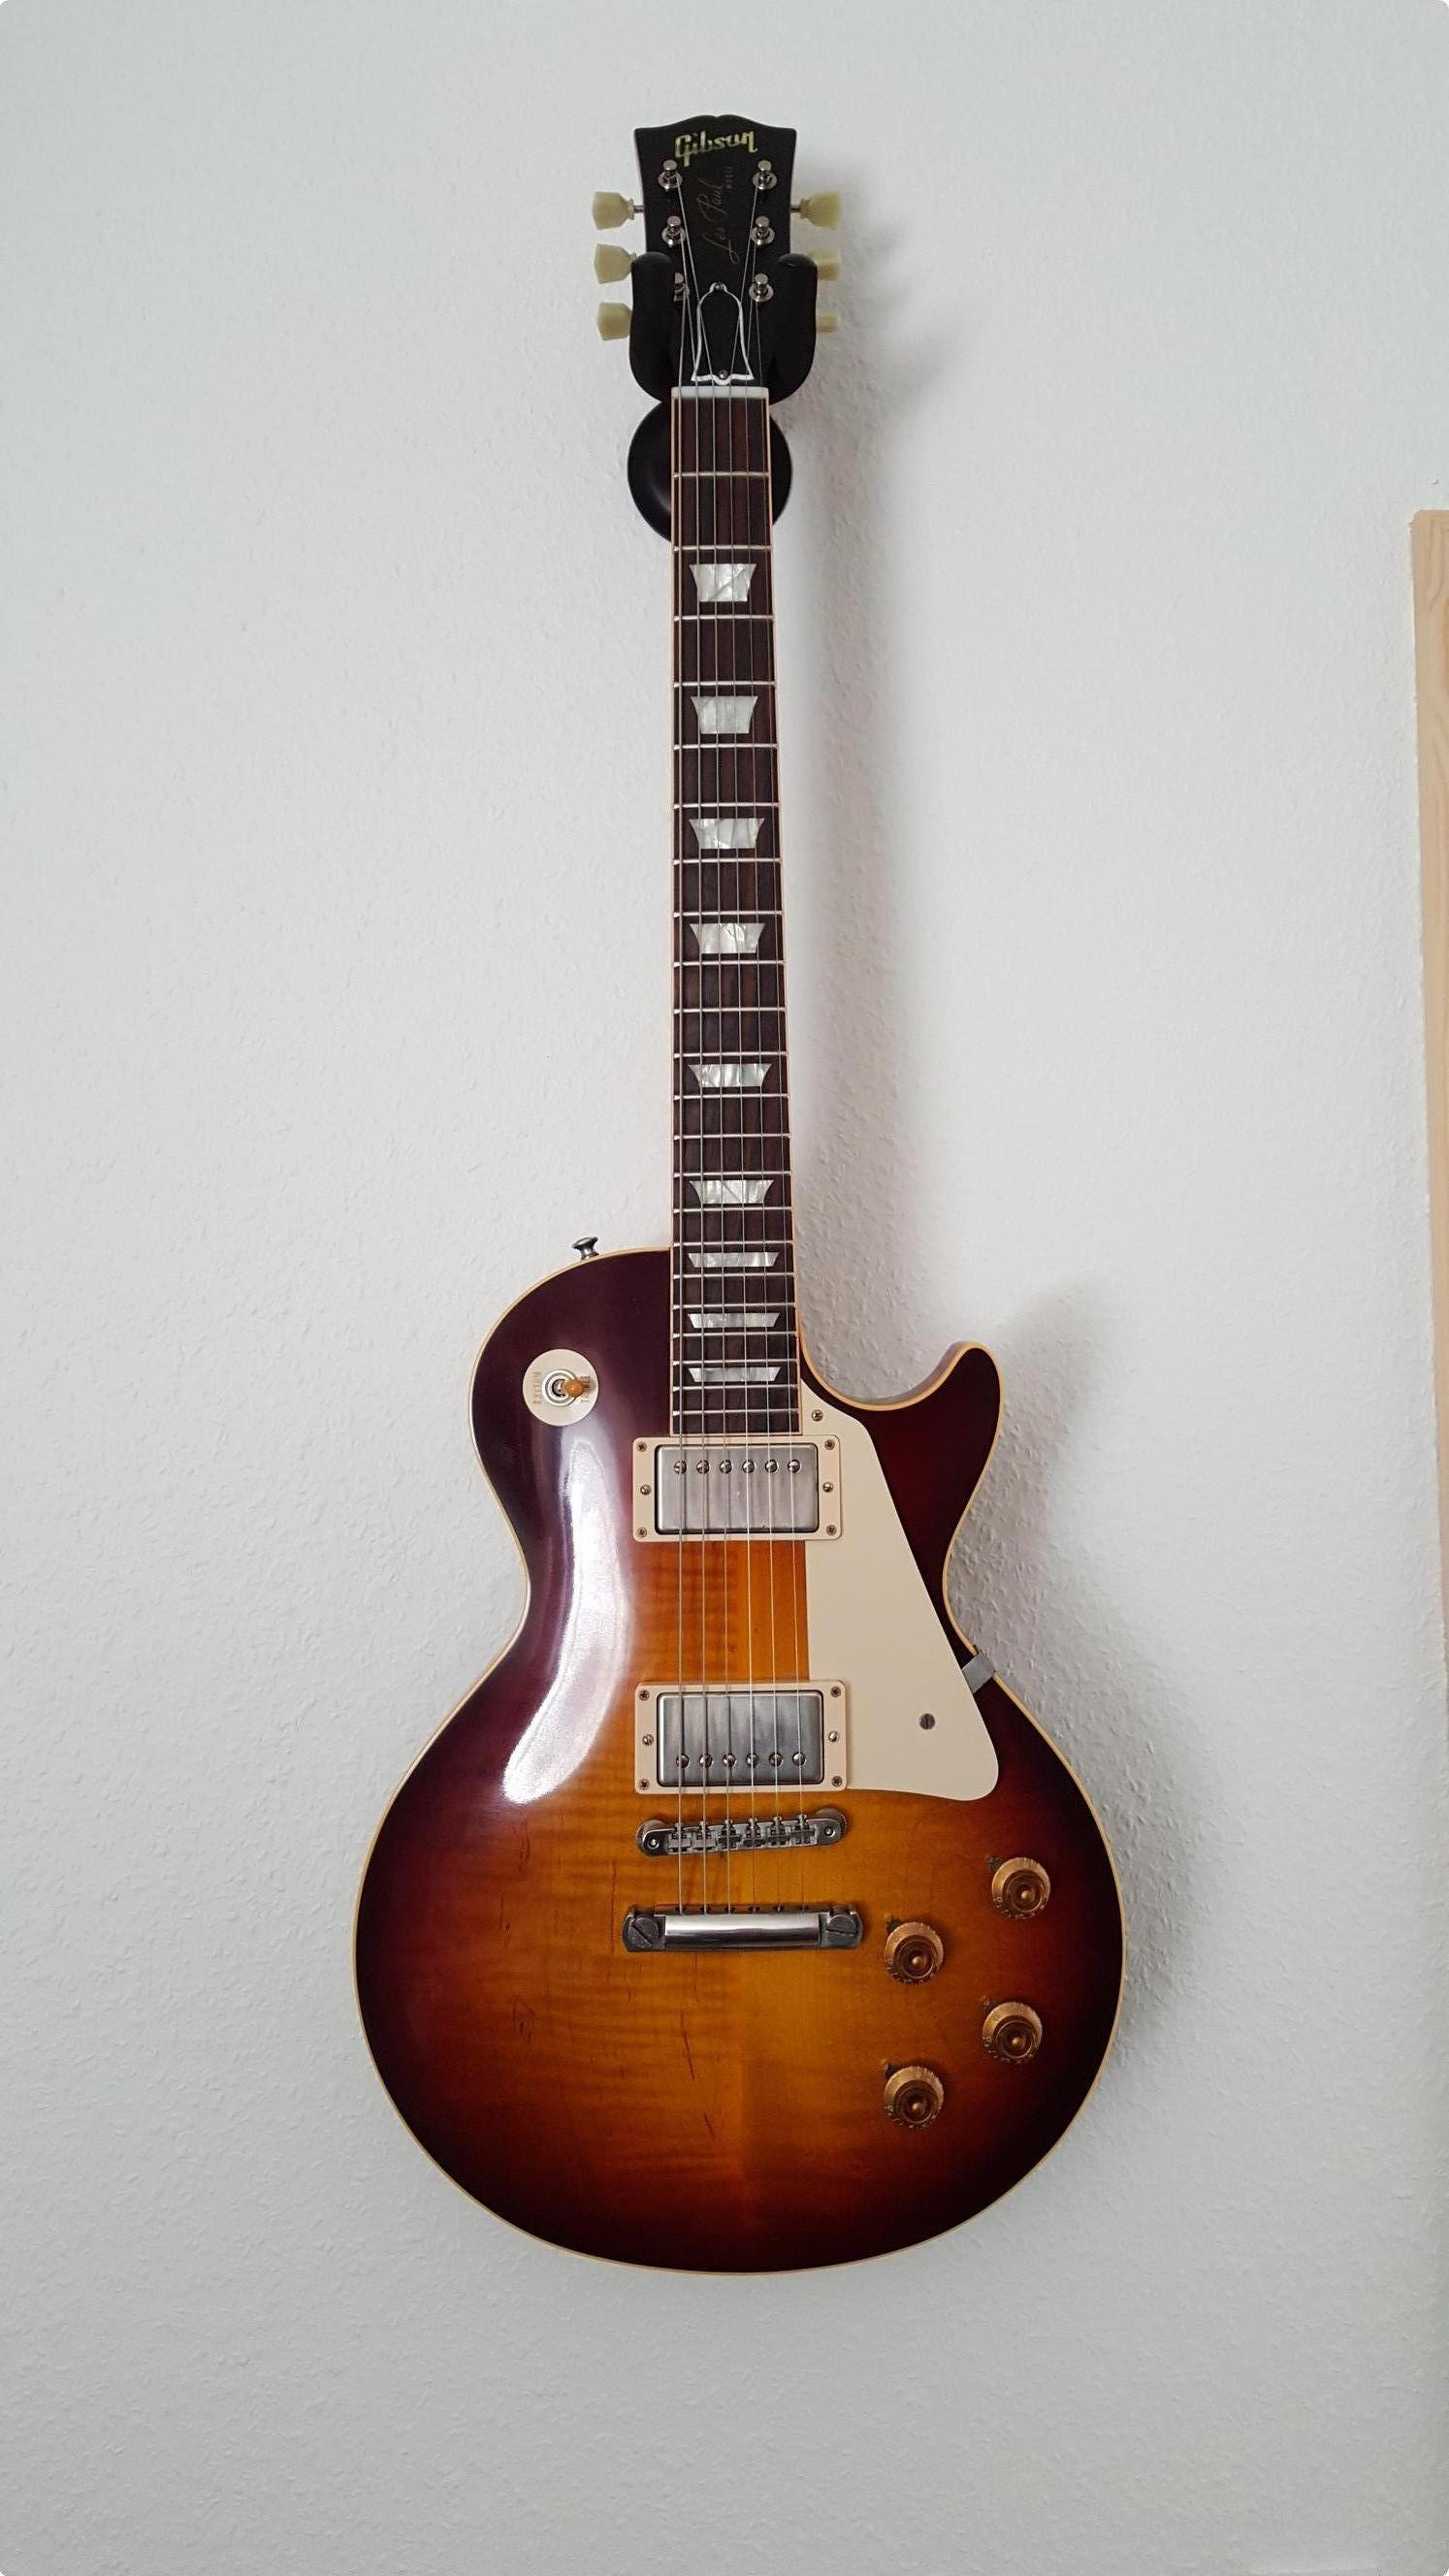 gibson 1959 les paul collectors choice cc 6 number one 2013 guitar for sale. Black Bedroom Furniture Sets. Home Design Ideas